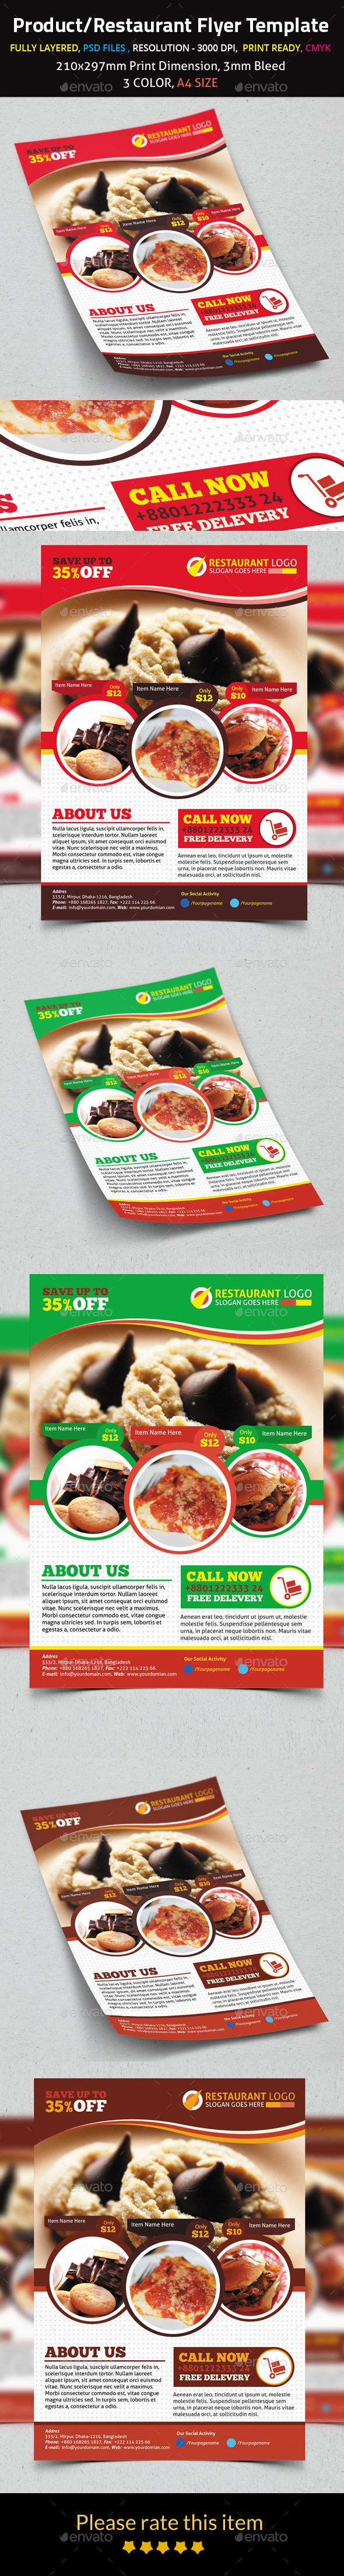 Product/Restaurant Flyer Template